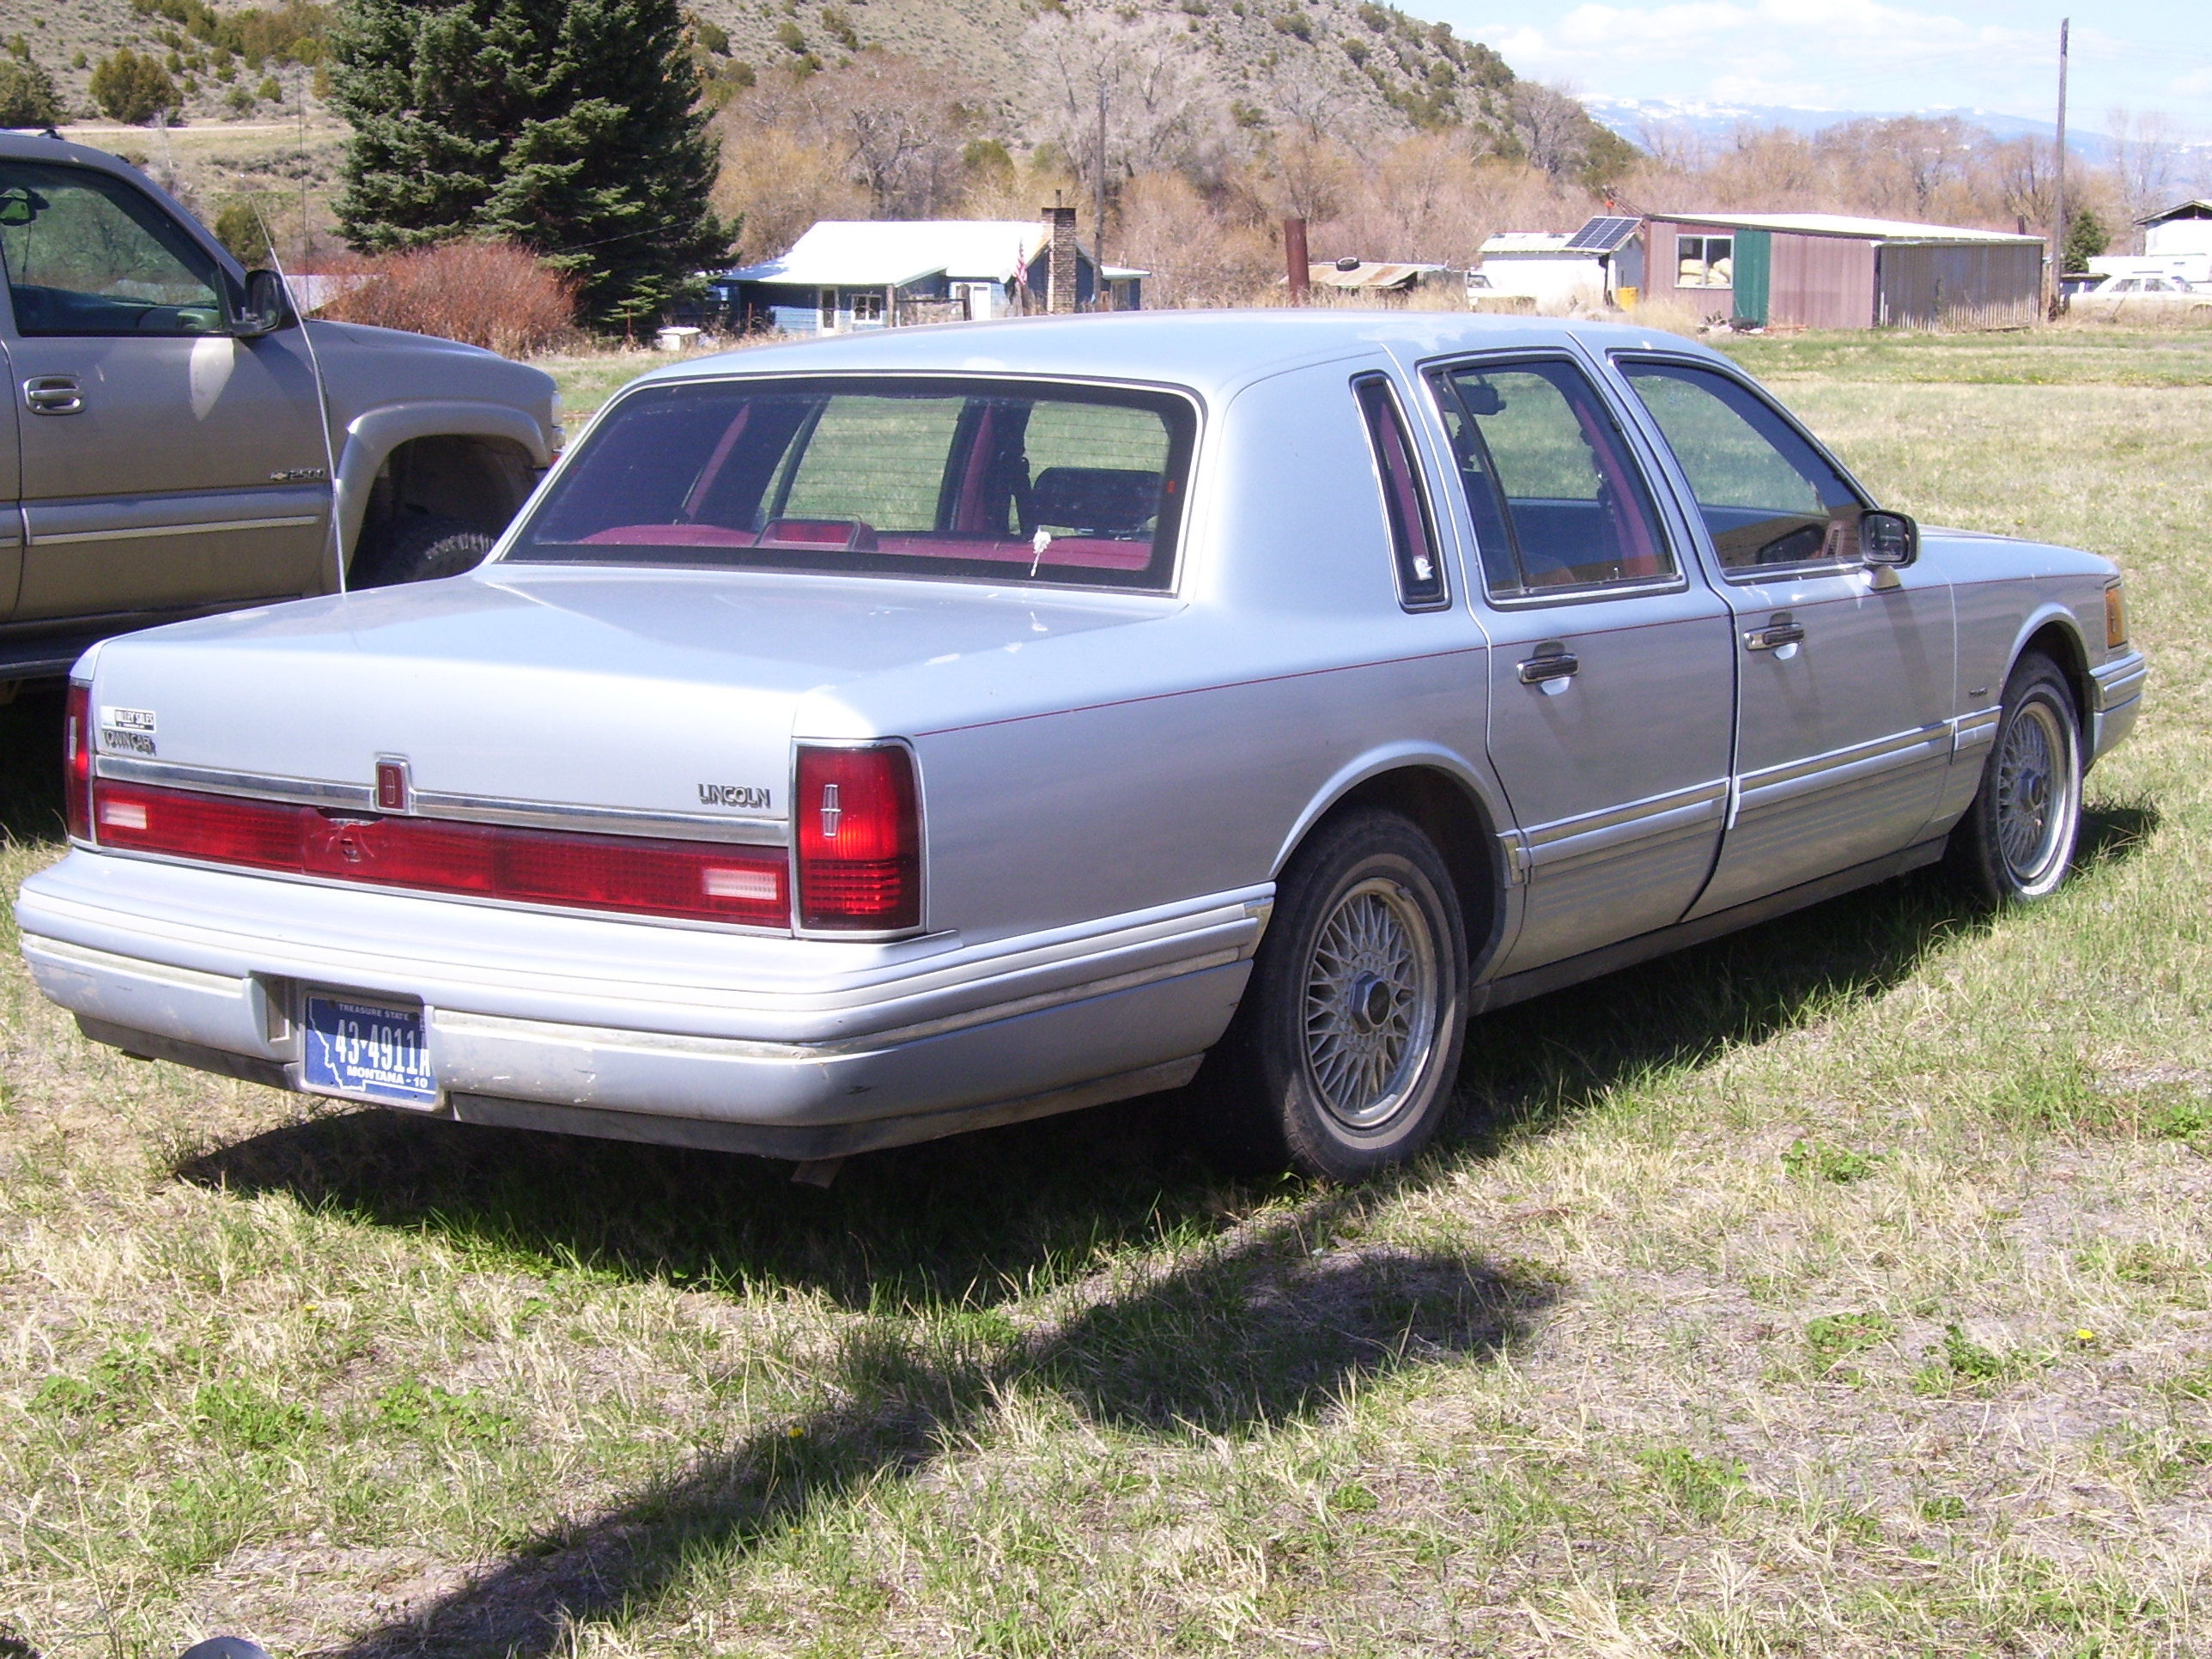 93 Lincoln Town Car image 1